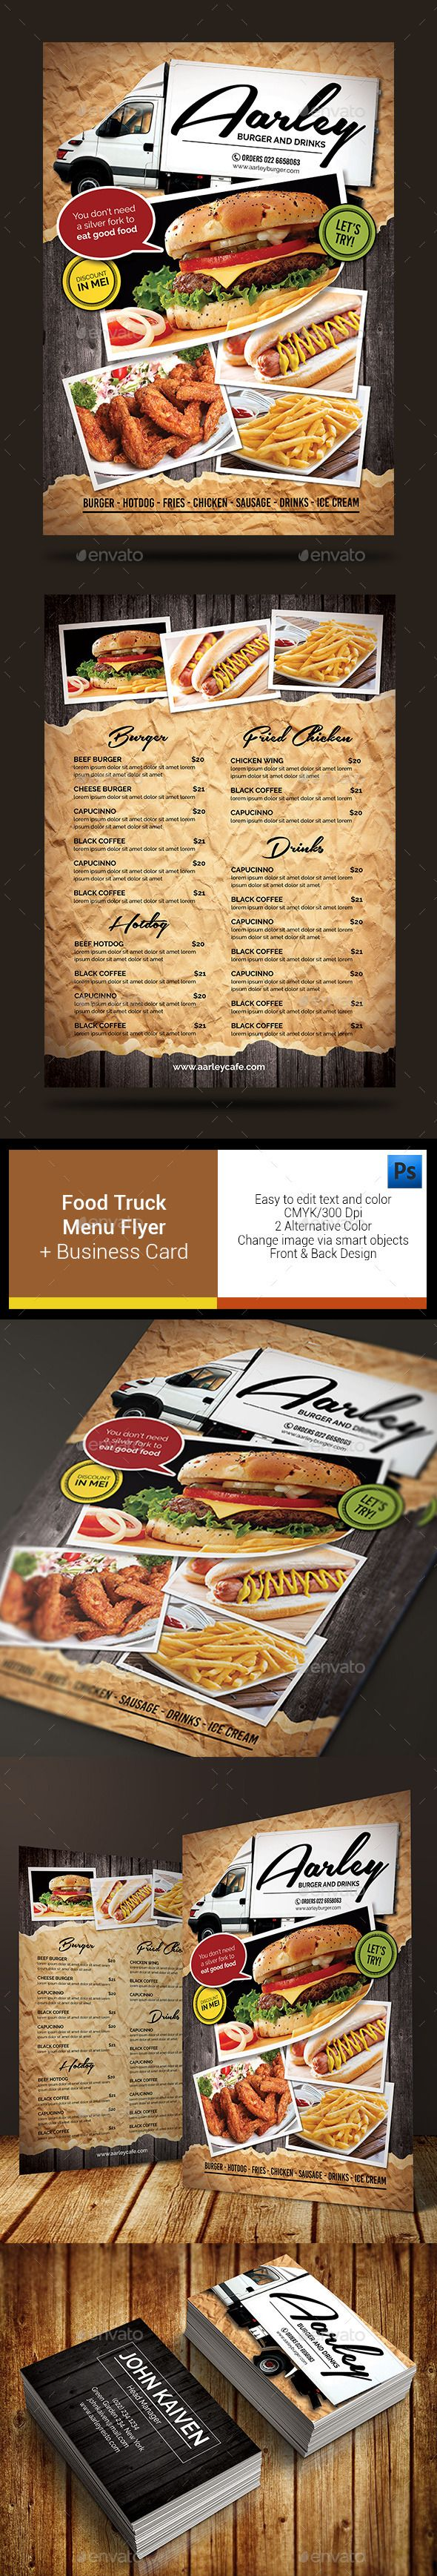 food truck menu flyer business card cards trucks and business card templates. Black Bedroom Furniture Sets. Home Design Ideas